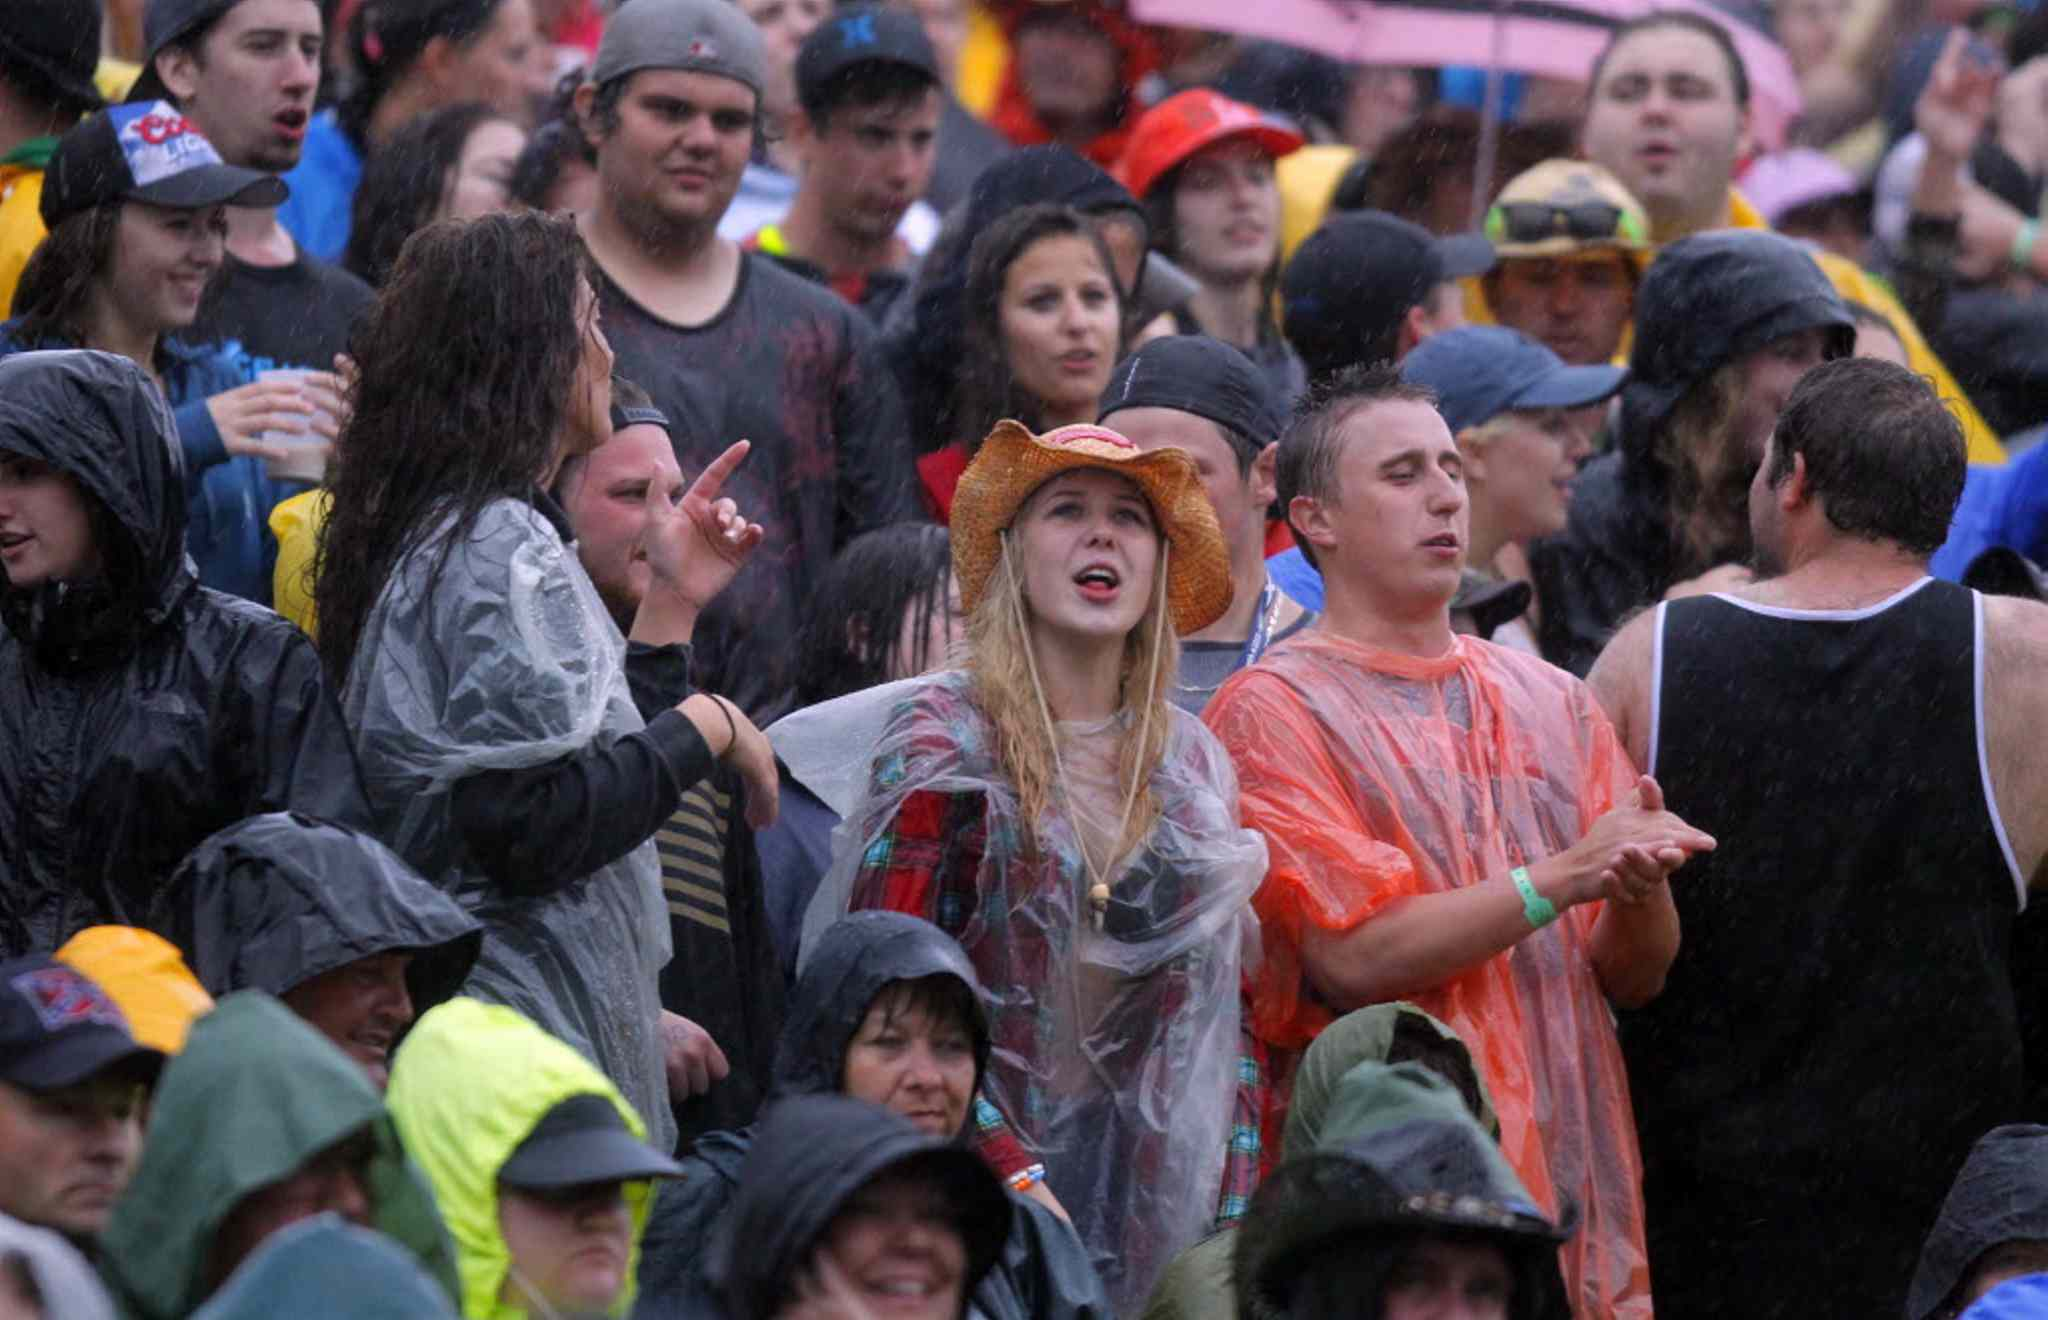 Dedicated, wet fans watch Dallas Smith performs second last Saturday night.